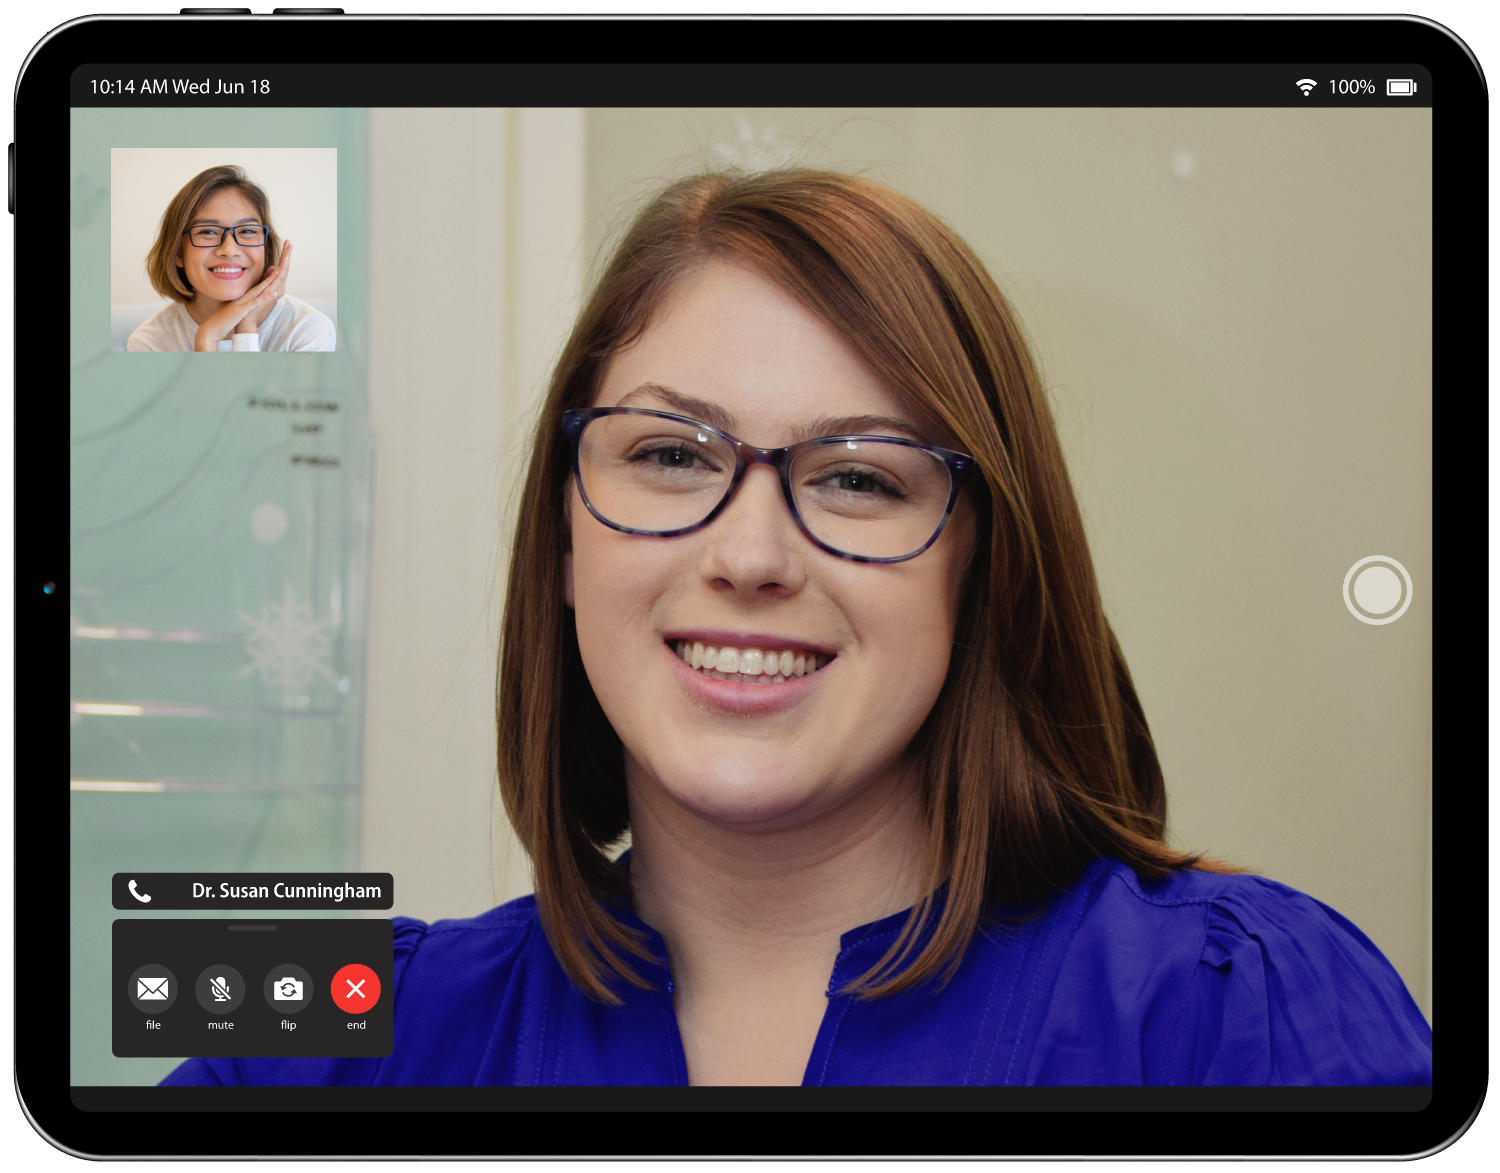 Tablet example of teledentistry software with Dr.Susan Cunningham